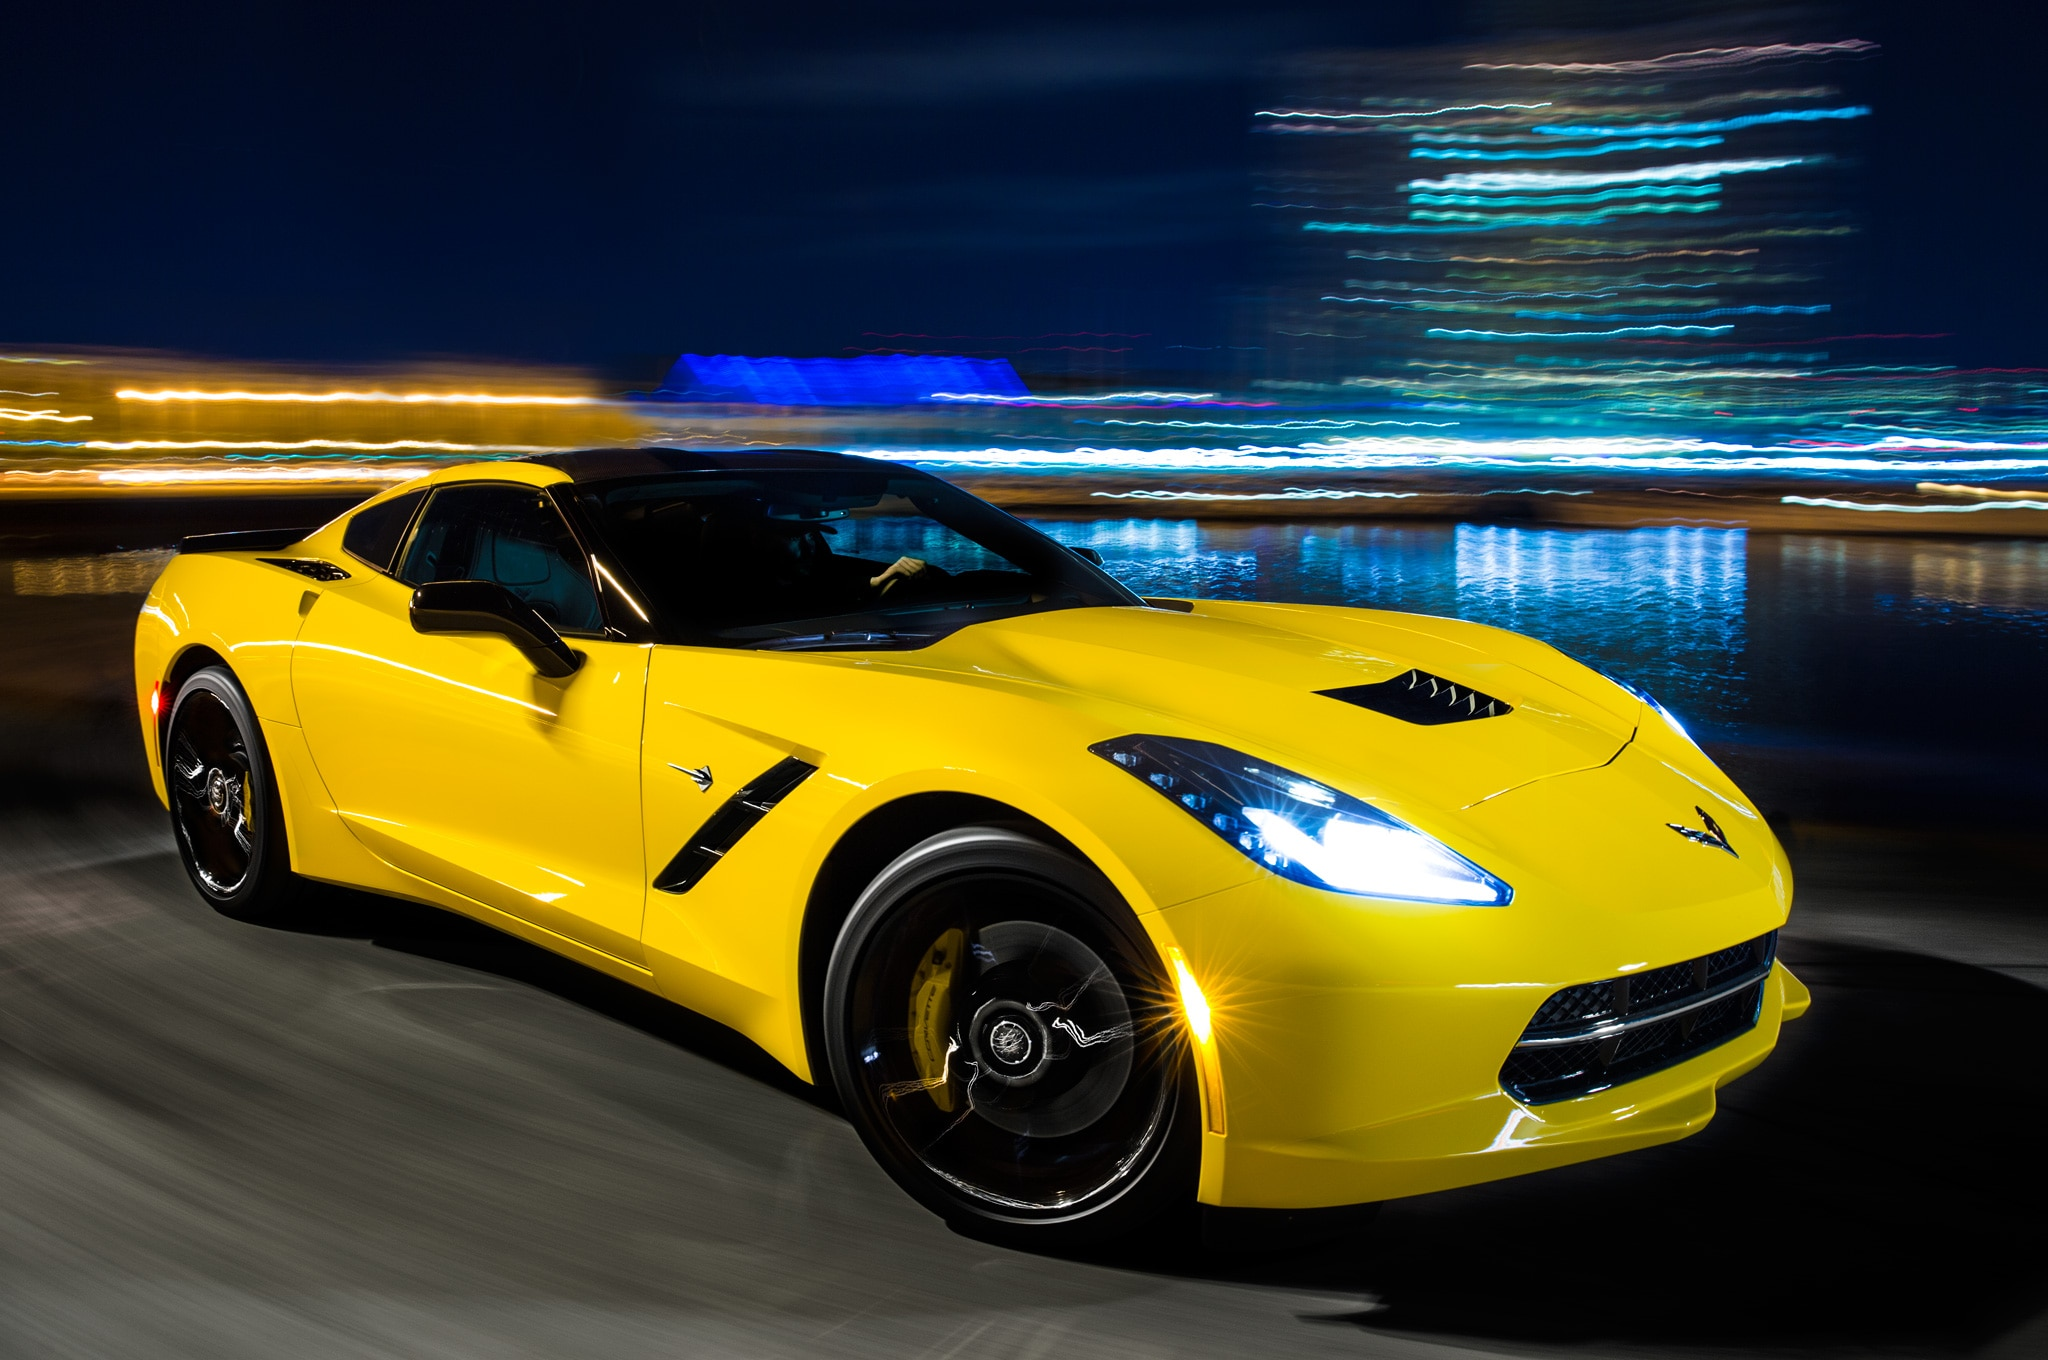 2014 chevrolet corvette stingray front right side view 2